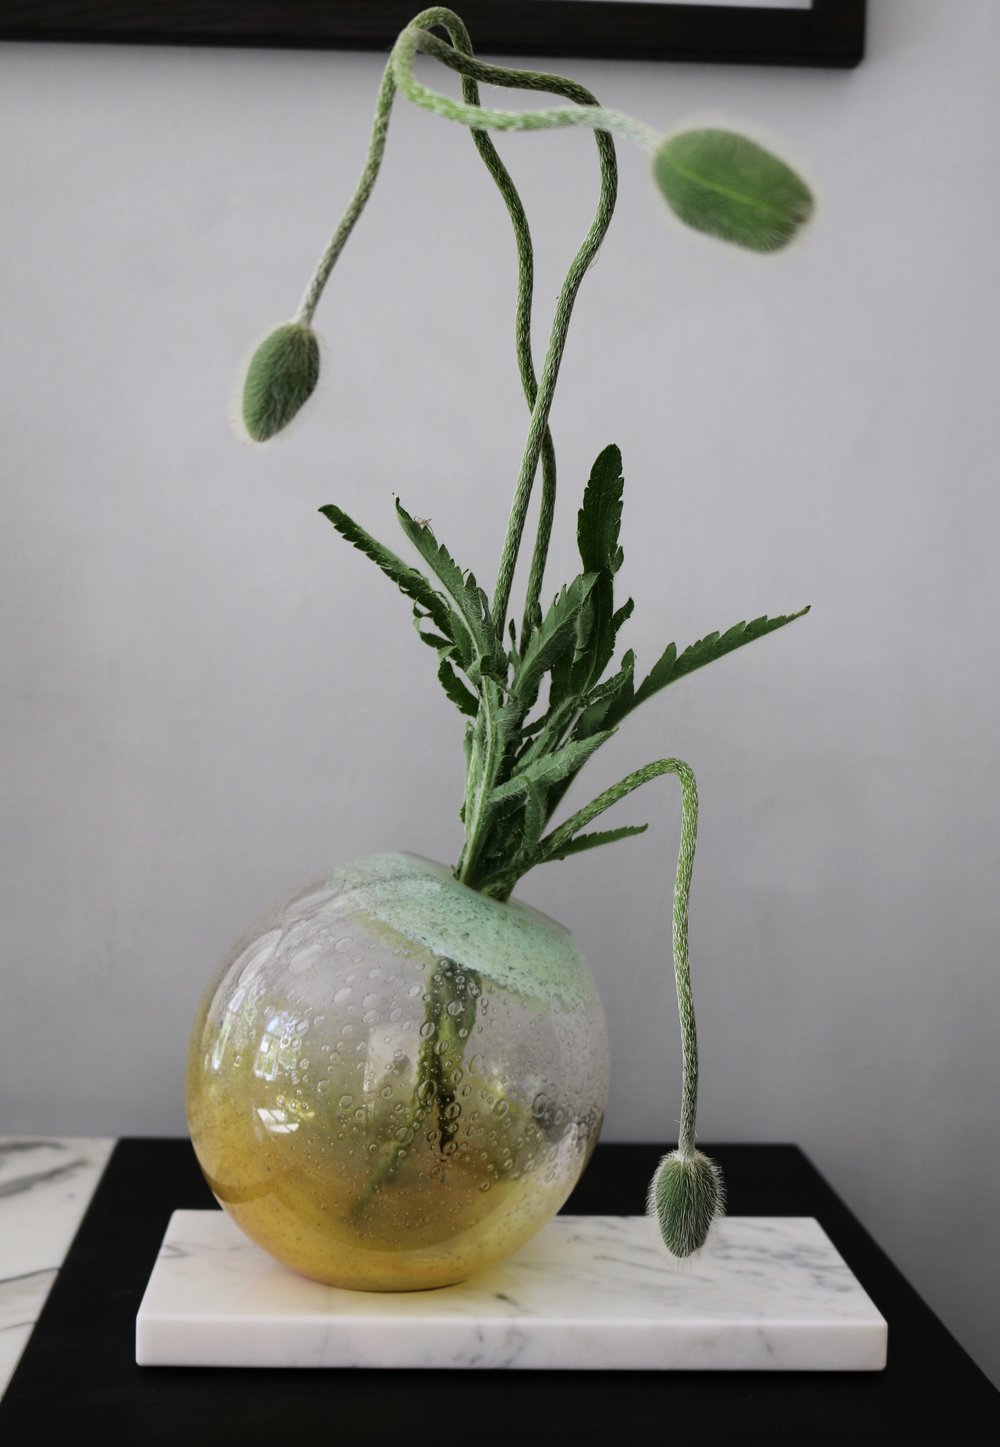 - EXQUISITE GLASS UNIVERSEEXPERIMENTAL x baibaglass (baiba dzenīte)Mouth-blown glass vase in warm yellow, mint green and clear. Extra clear glass.On hand-cut polished Carrara marble base.'Elegant but fun, suitable for a gift or would fit anywhere to soothe ever-beauty-seeking eye'dimensions : 27 x 15, H 17.5 cm420 EUR